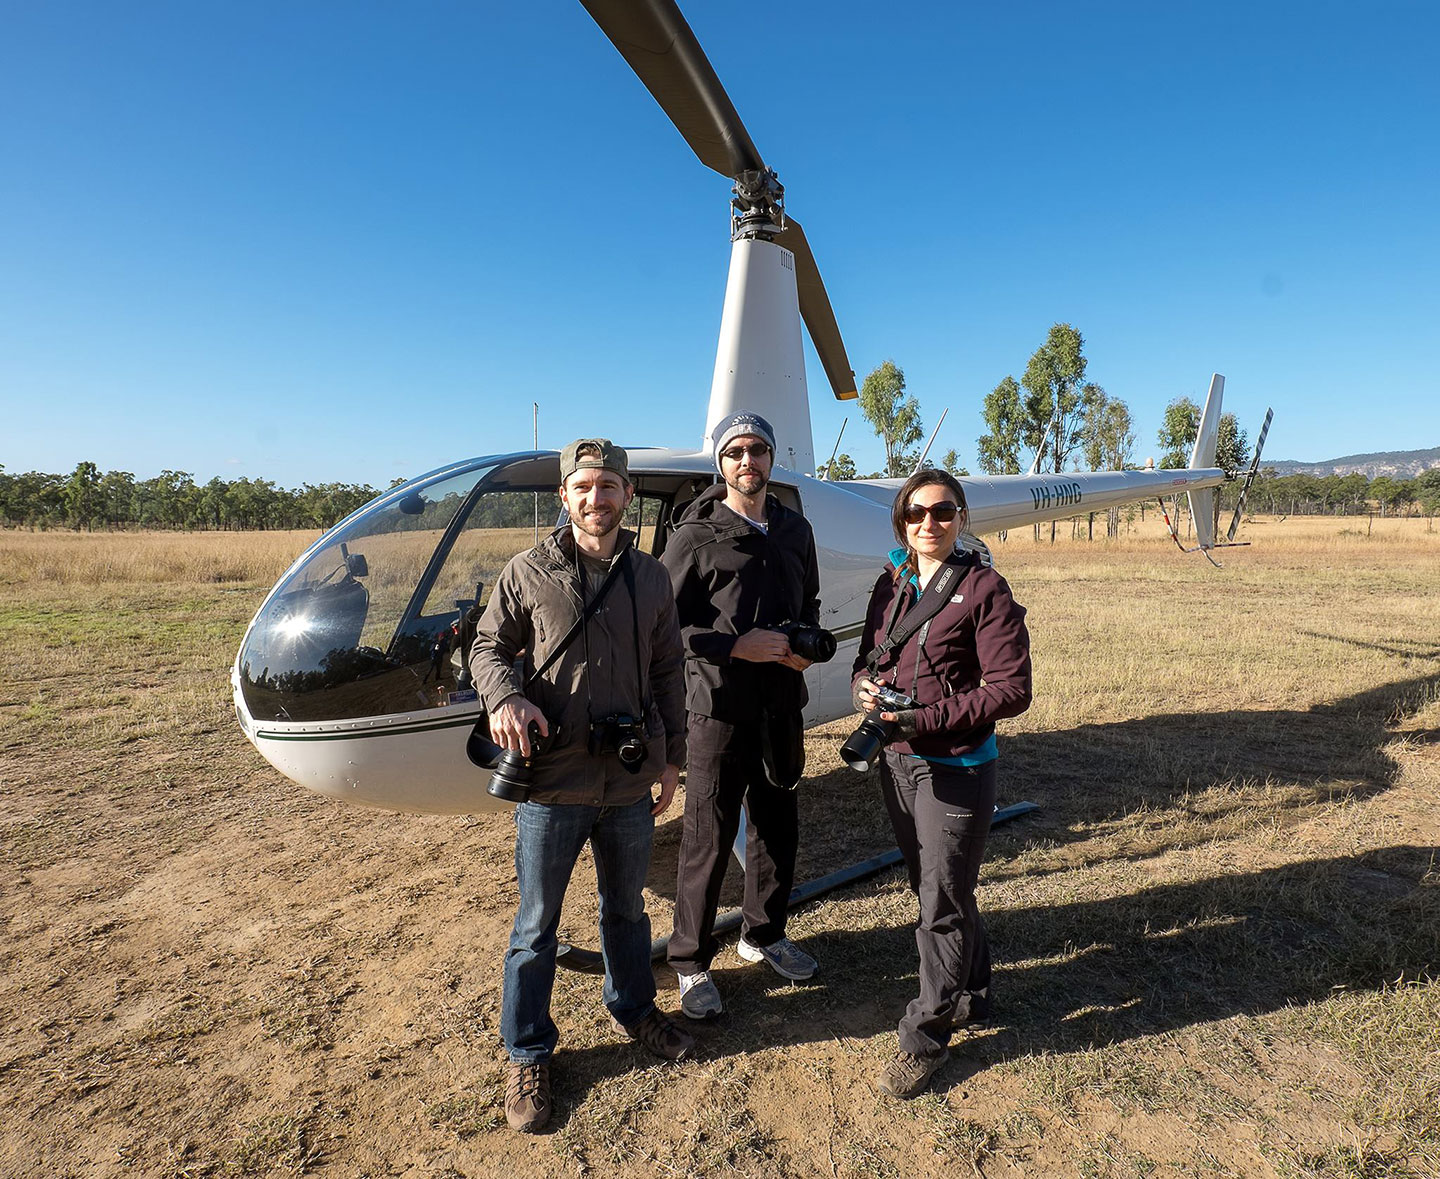 Before flying over the Carnarvon Gorge